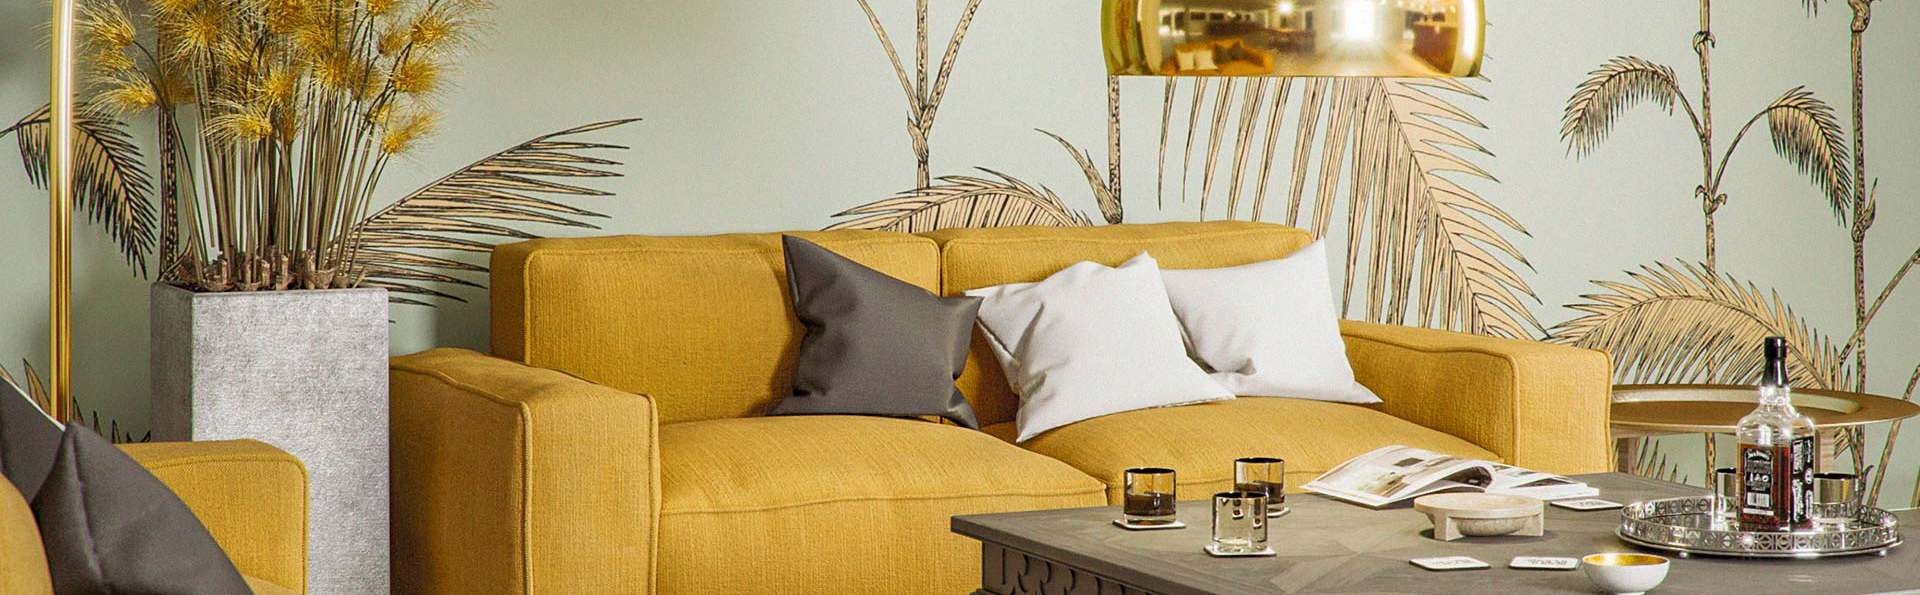 The 15th Boutique Hotel - EDIT_LOUNGE_01.jpg